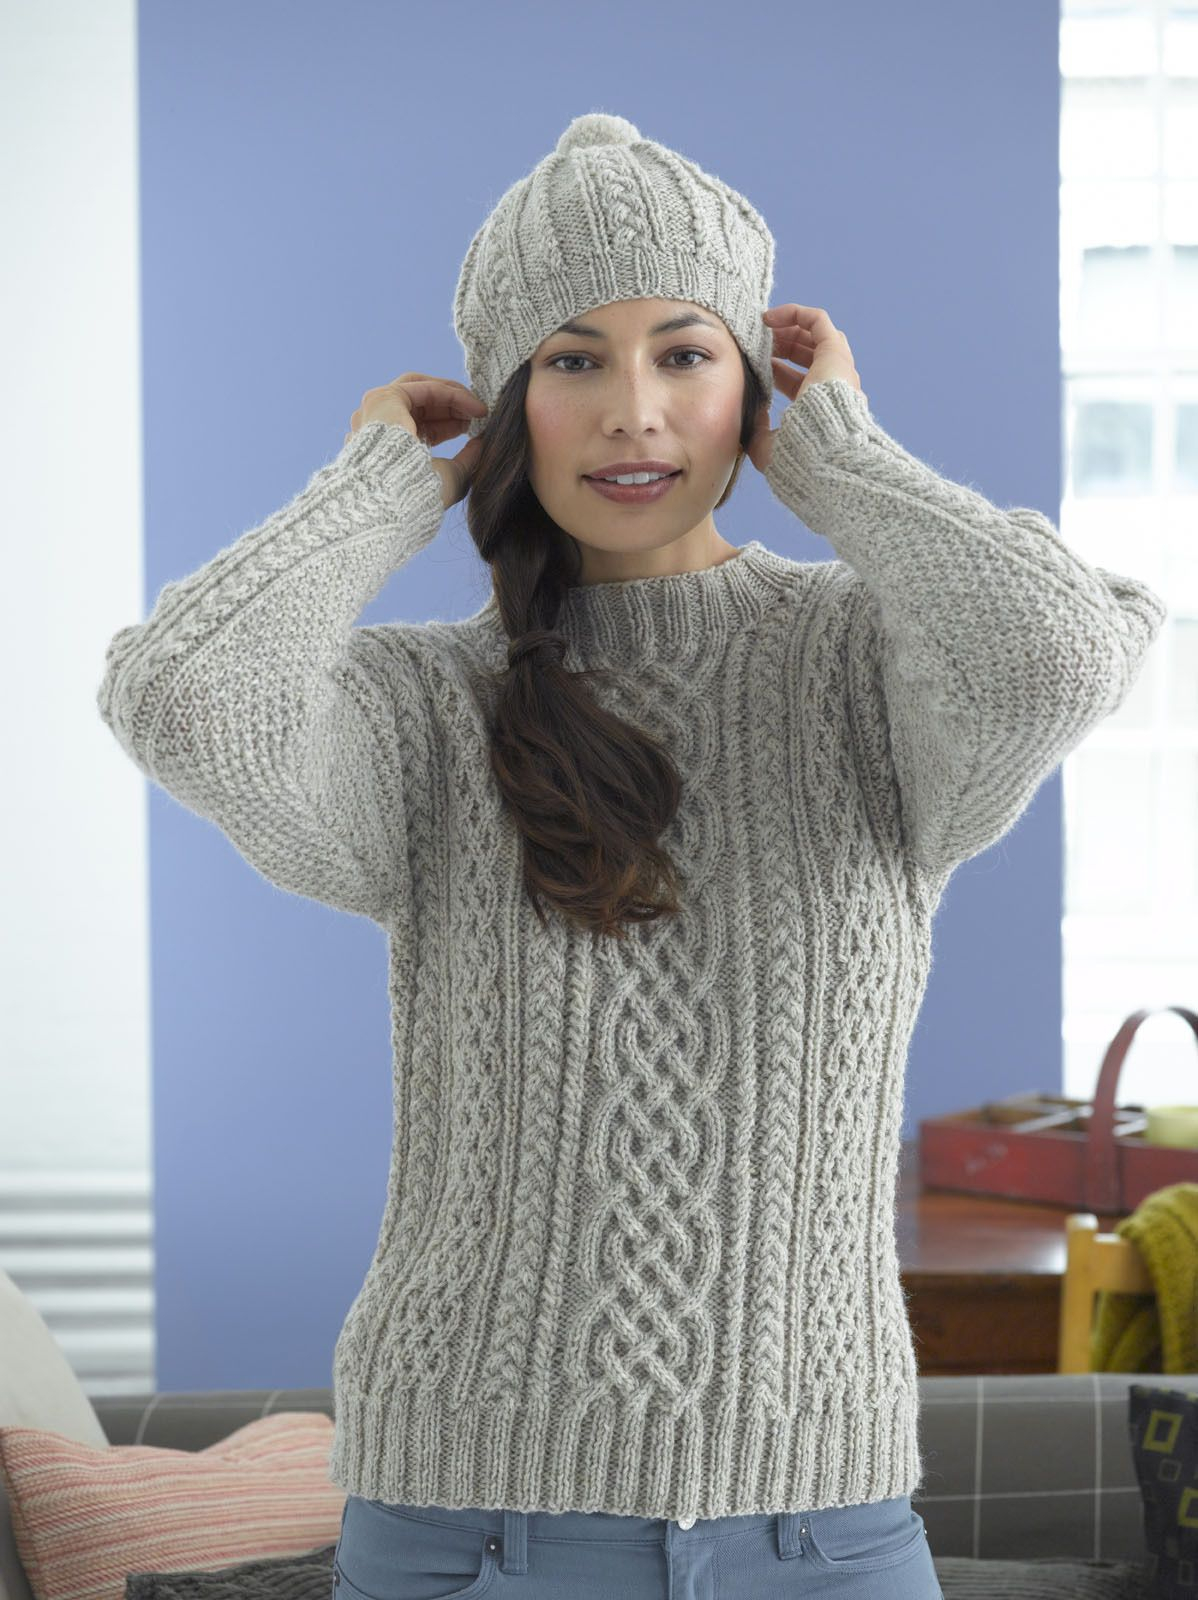 Aran Knitting Patterns Free Woman Top 5 Free Knitting Patterns For Christmas In July Chicks With